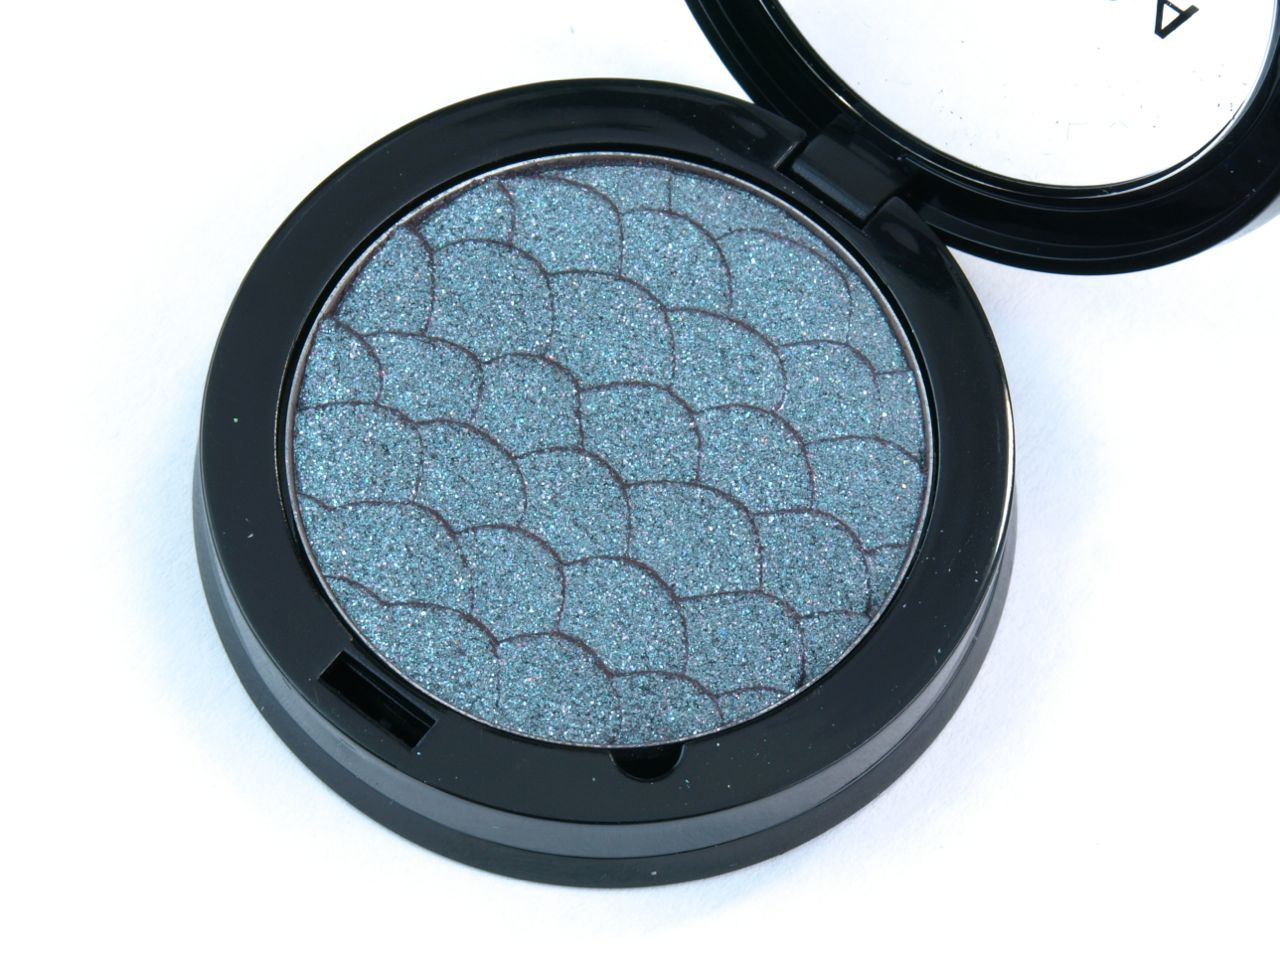 "Sephora Colorful Duo Reflects Long Lasting Eyeshadow in ""112 Mermaid Tail"": Review and Swatches"